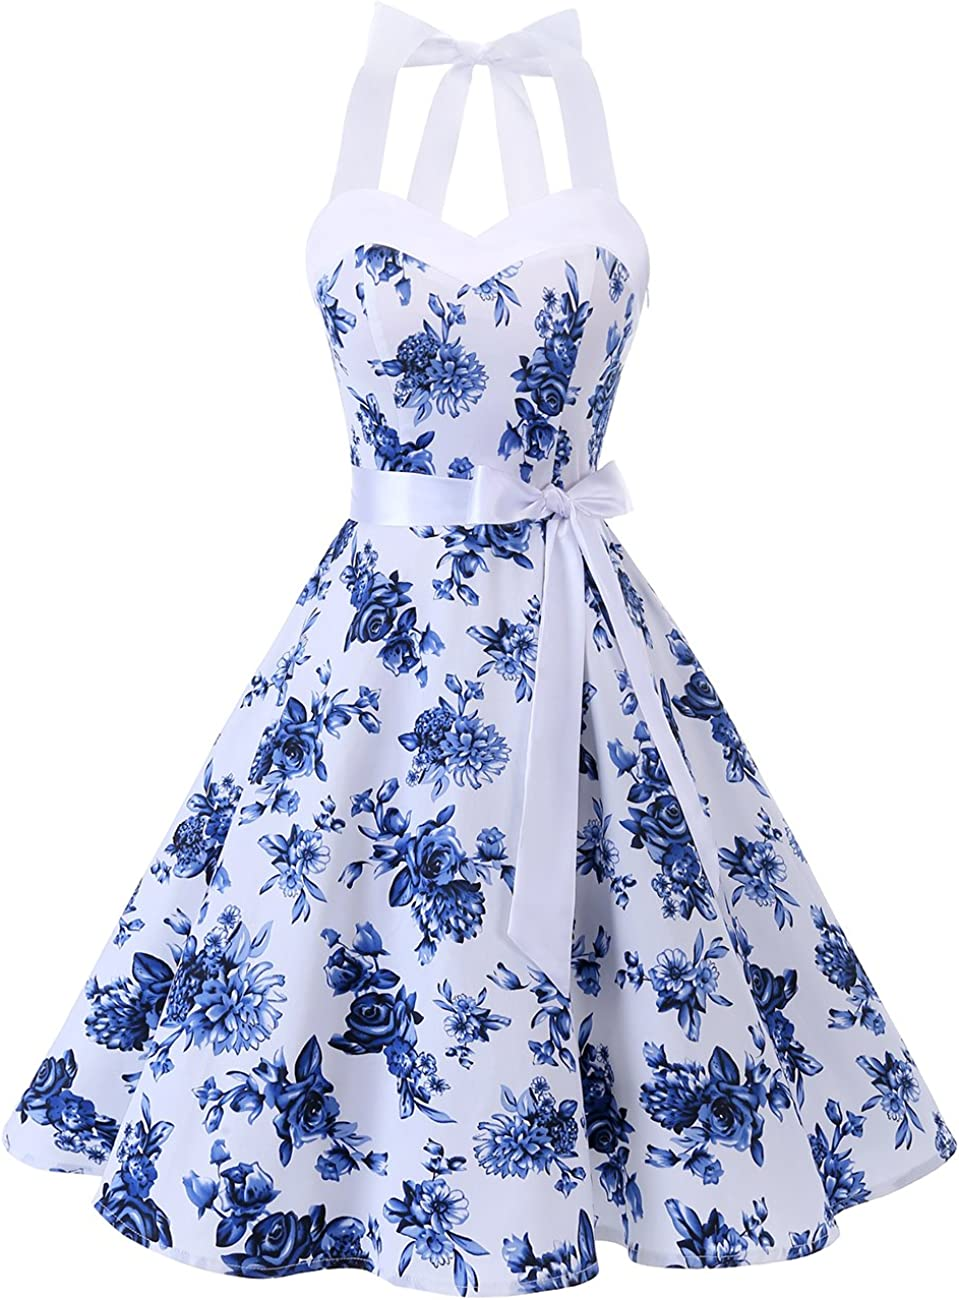 TALLA M. Dresstells® Halter 50s Rockabilly Polka Dots Audrey Dress Retro Cocktail Dress White Blue Flower M